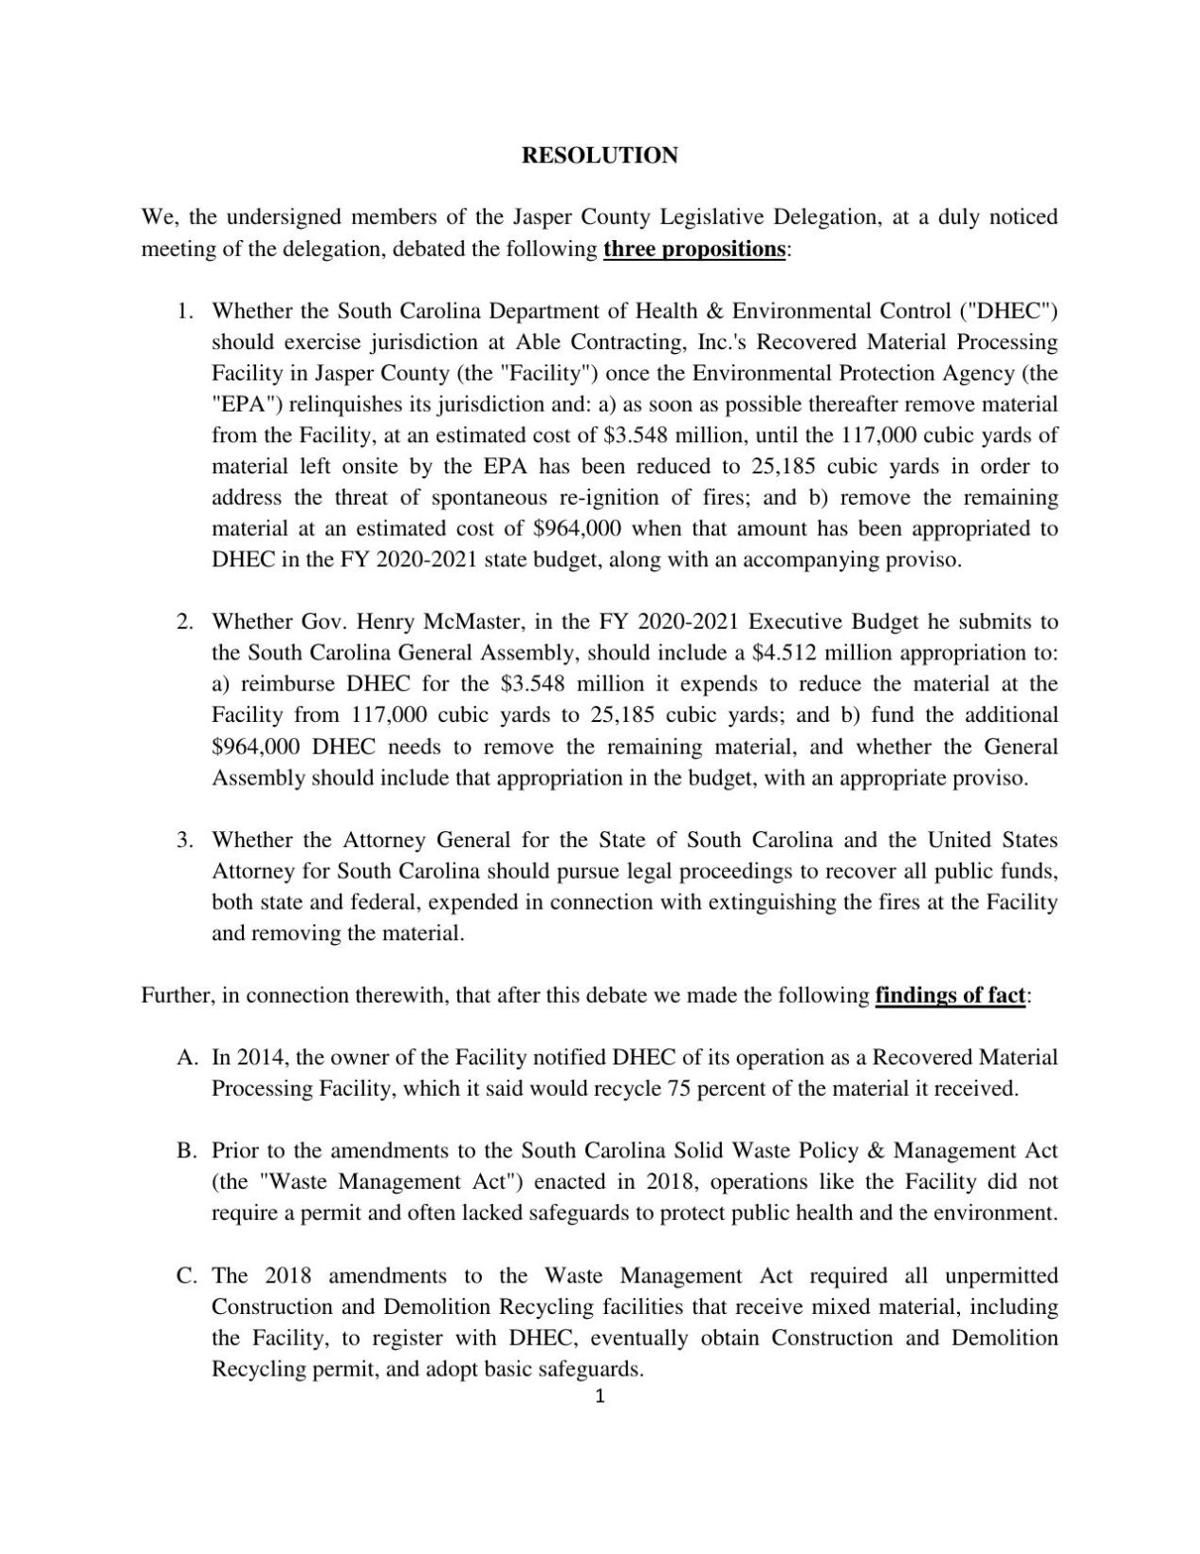 Joint resolution regarding Able Contracting cleanup